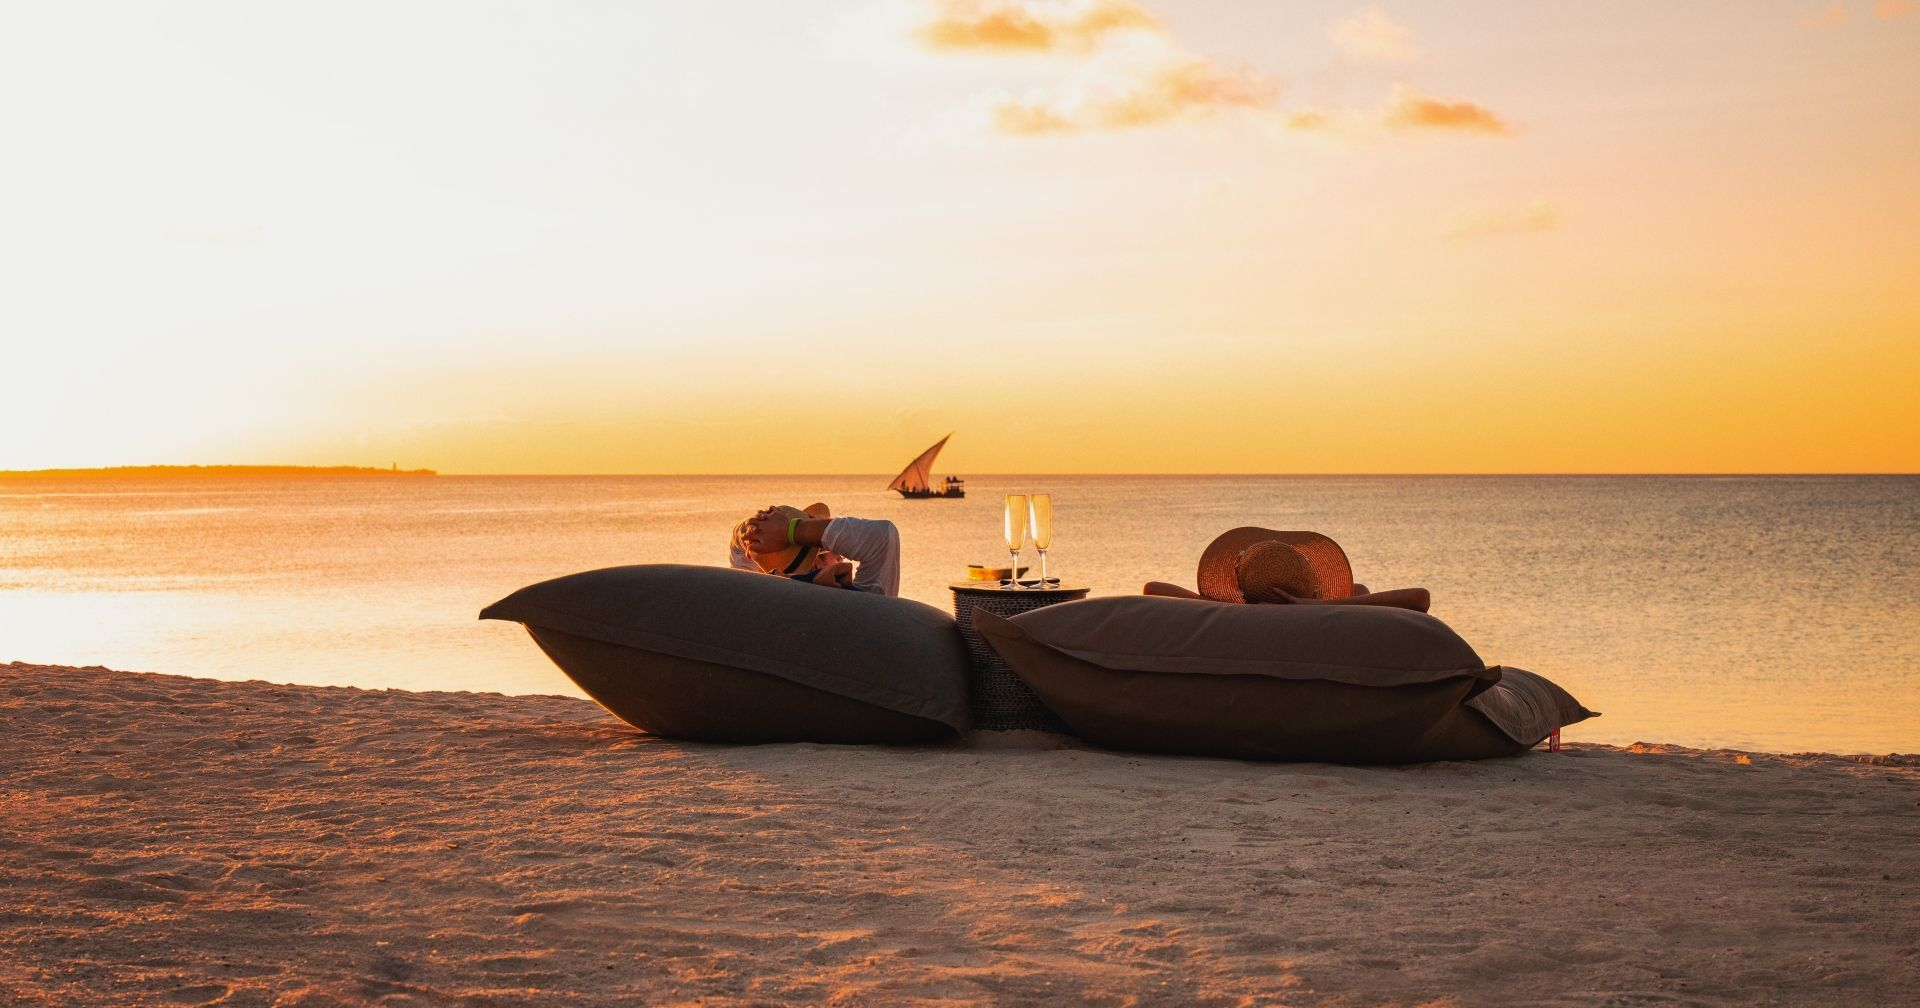 Watch the Dhows glide by